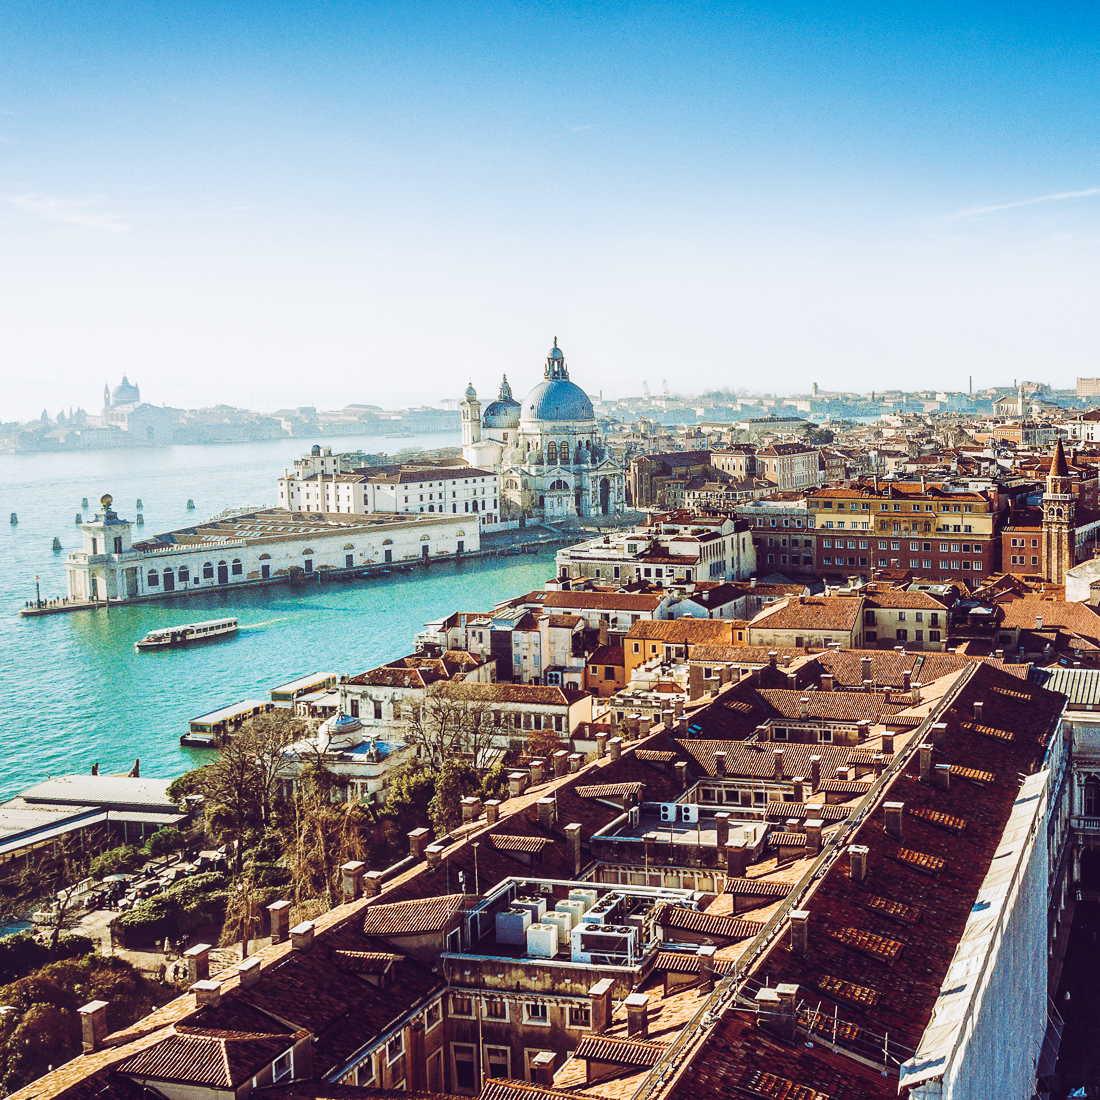 Panoramic aerial cityscape of Venice, Italy